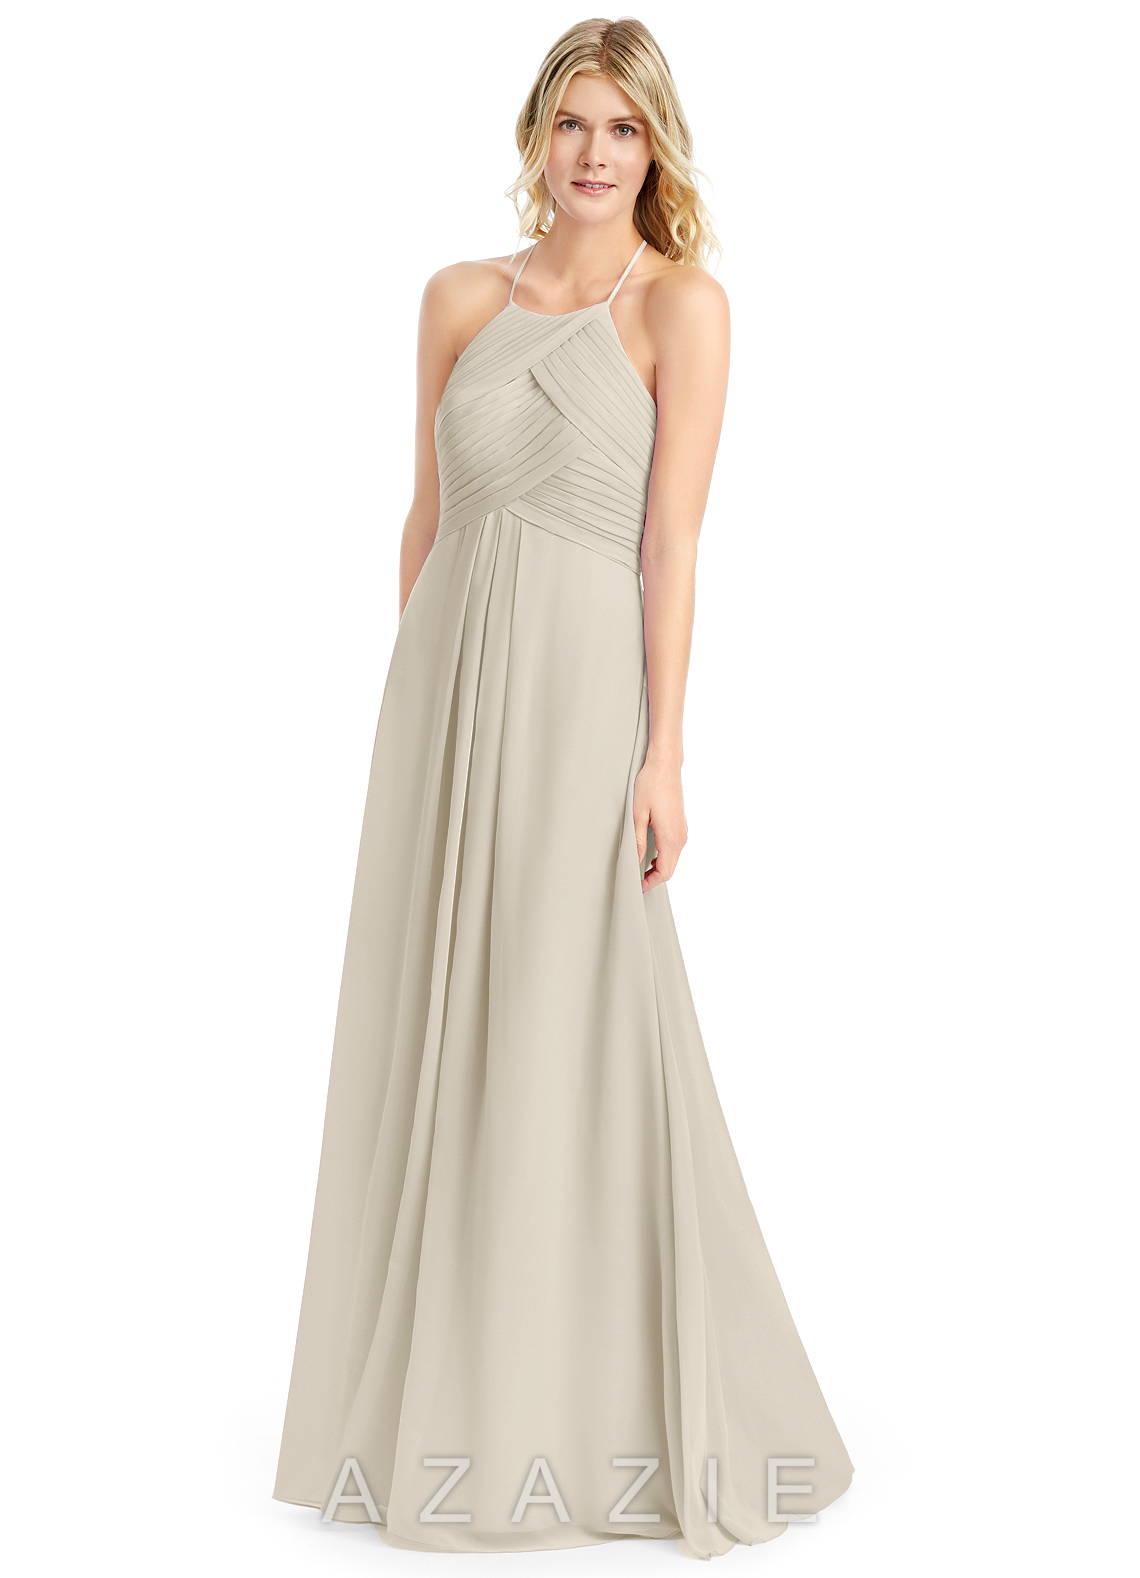 Azazie Ginger Bridesmaid Dress | Azazie